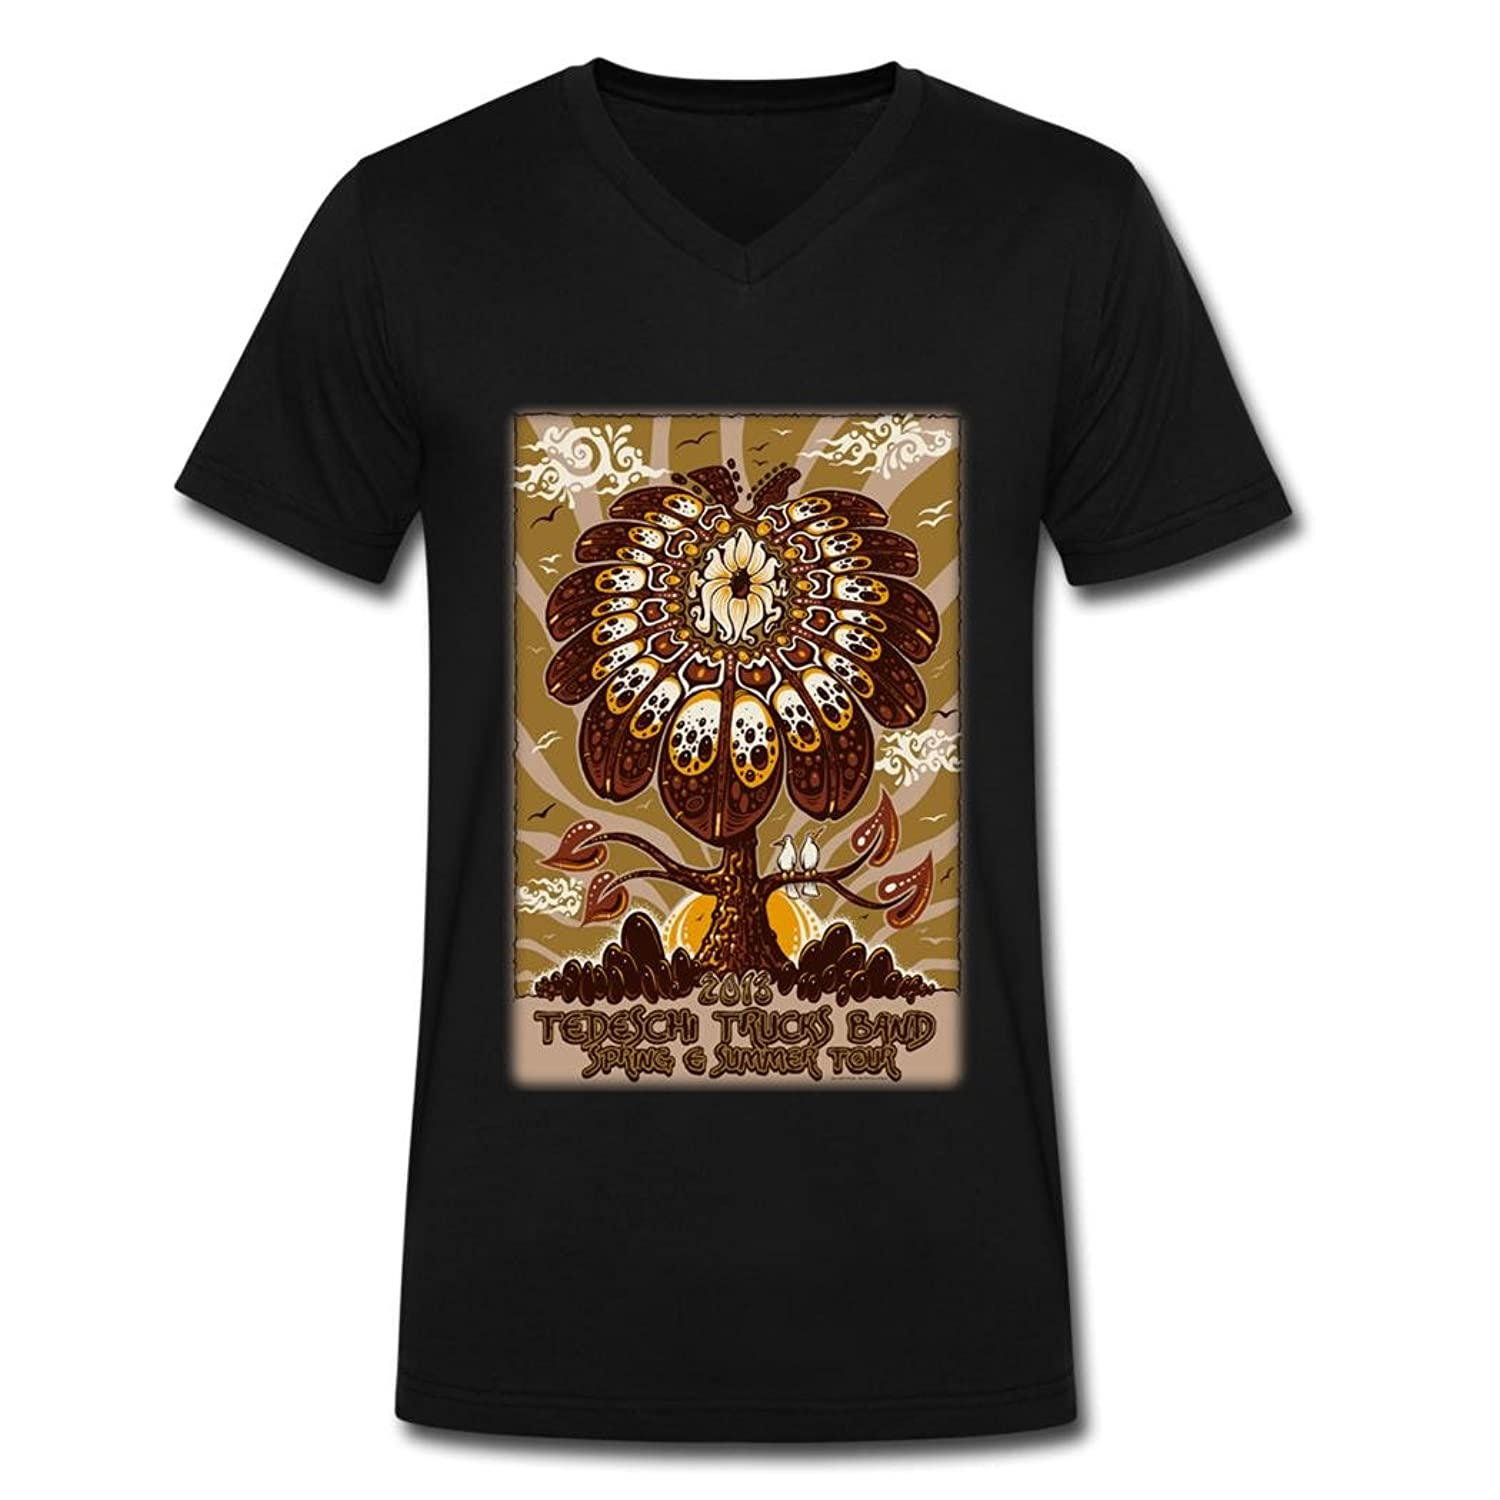 HL 2016 fashion tedeschi trucks popular poster tee shirt for men Black